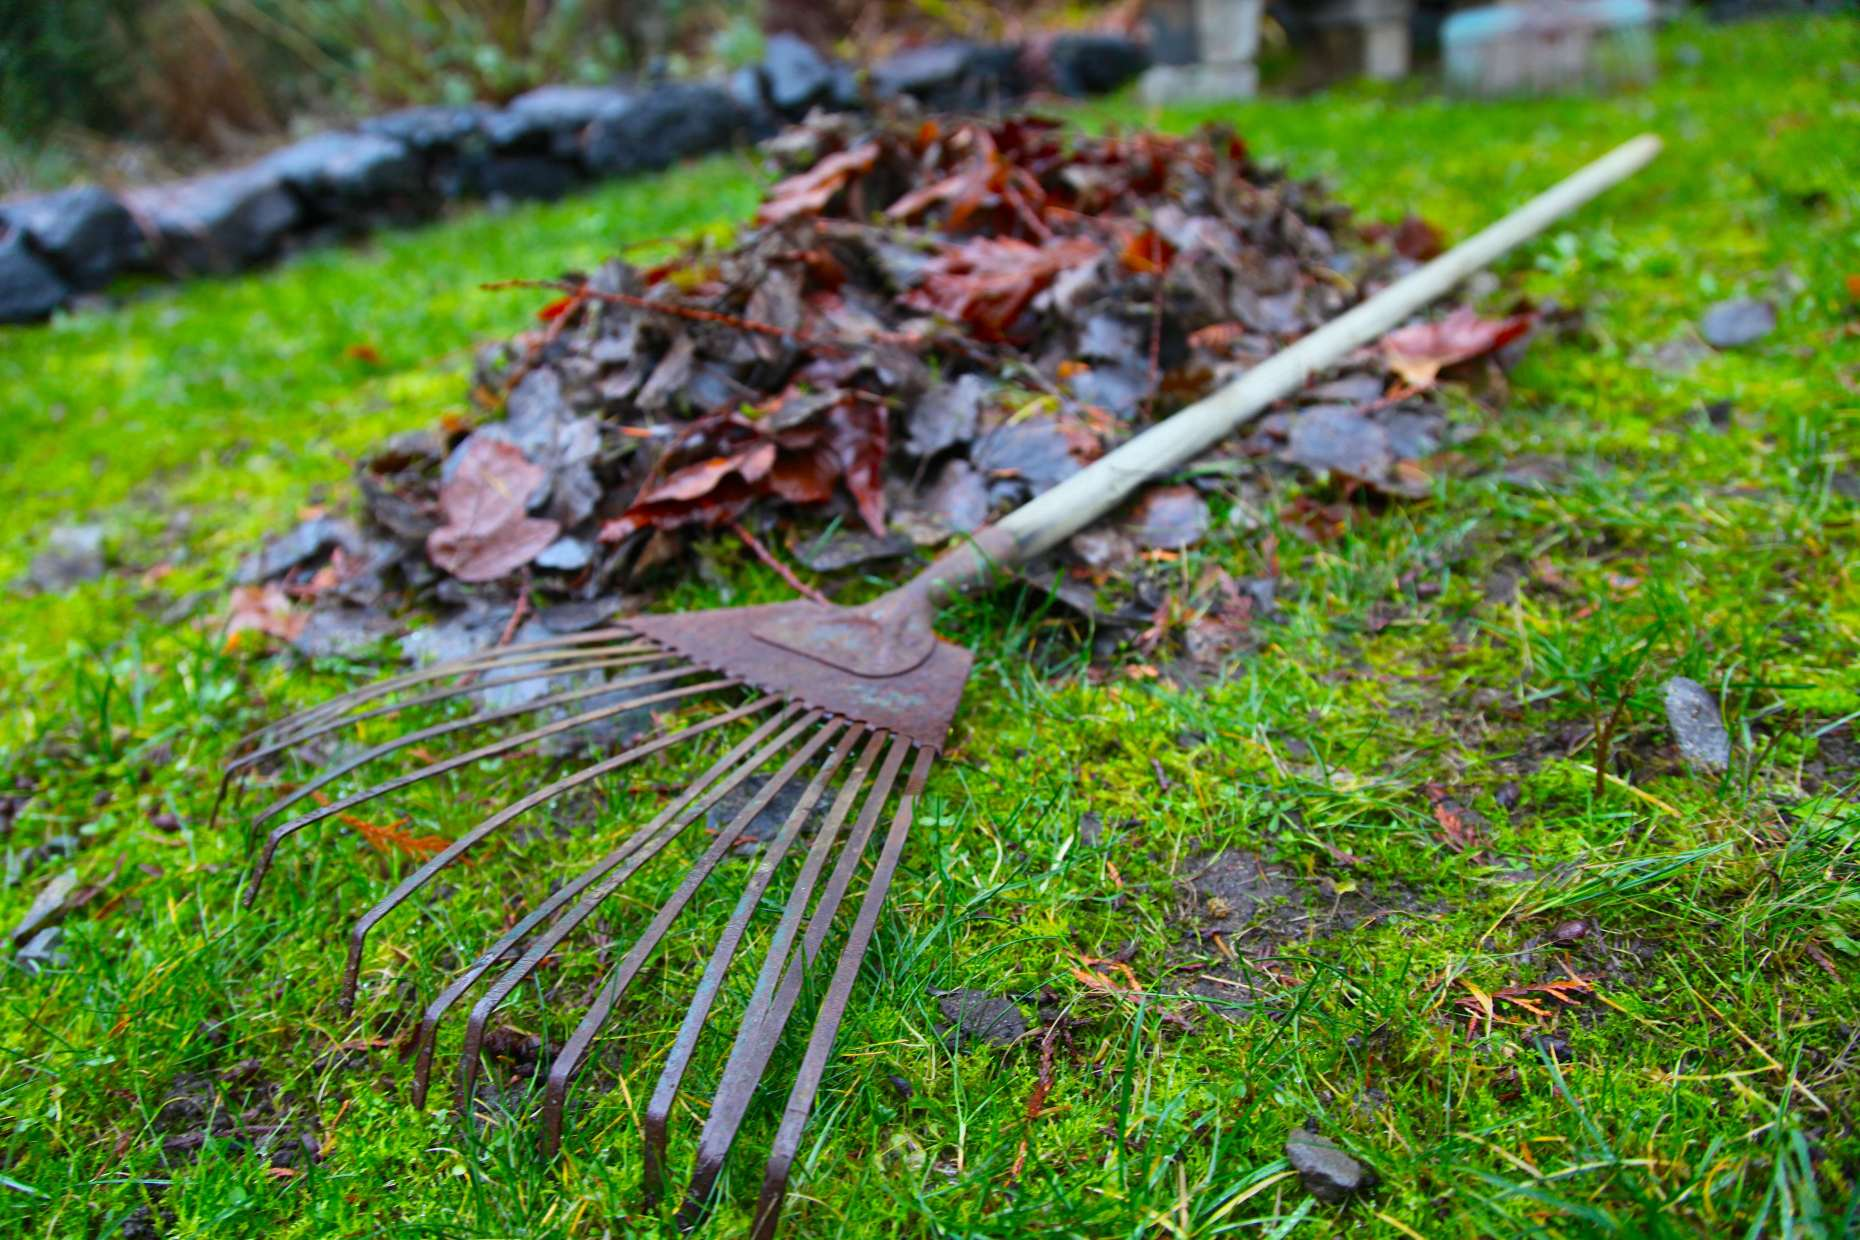 Introducing my favorite rake. Metal, and about 10 years old. It gets all jobs done. Photo © Liesl Clark